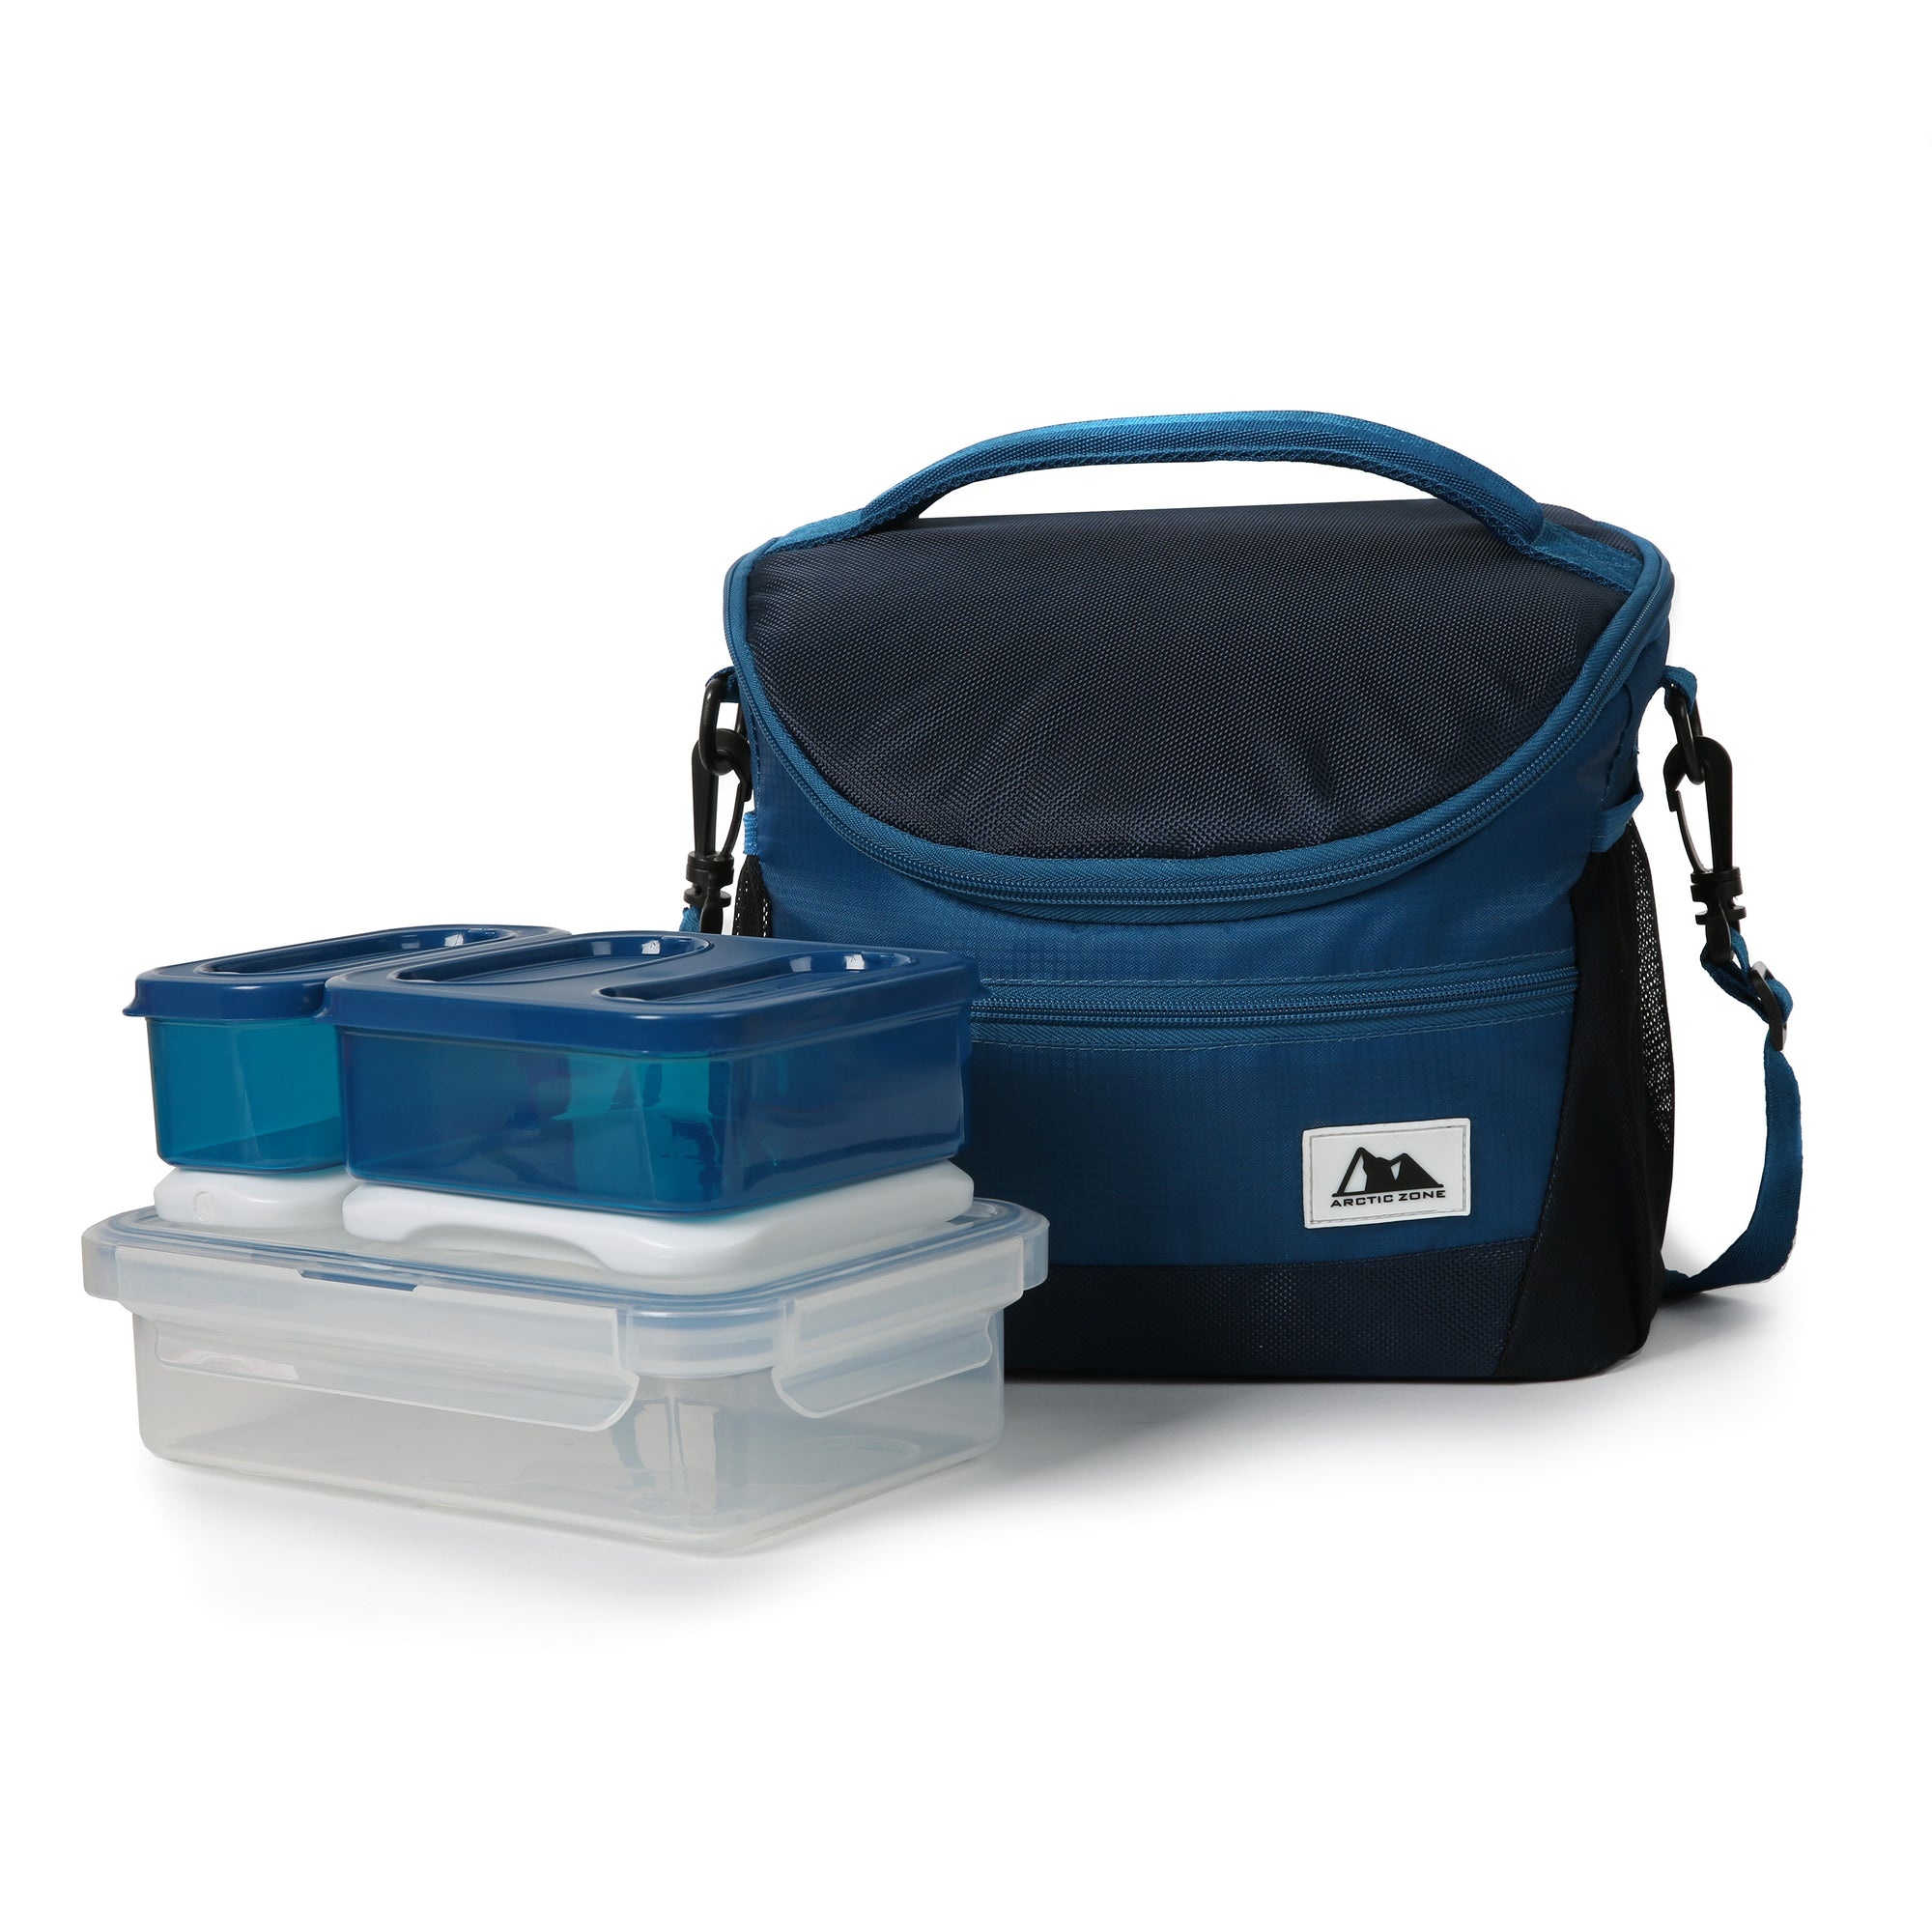 High Performance Meal Prep Day Pack - Blue - Front, with container set